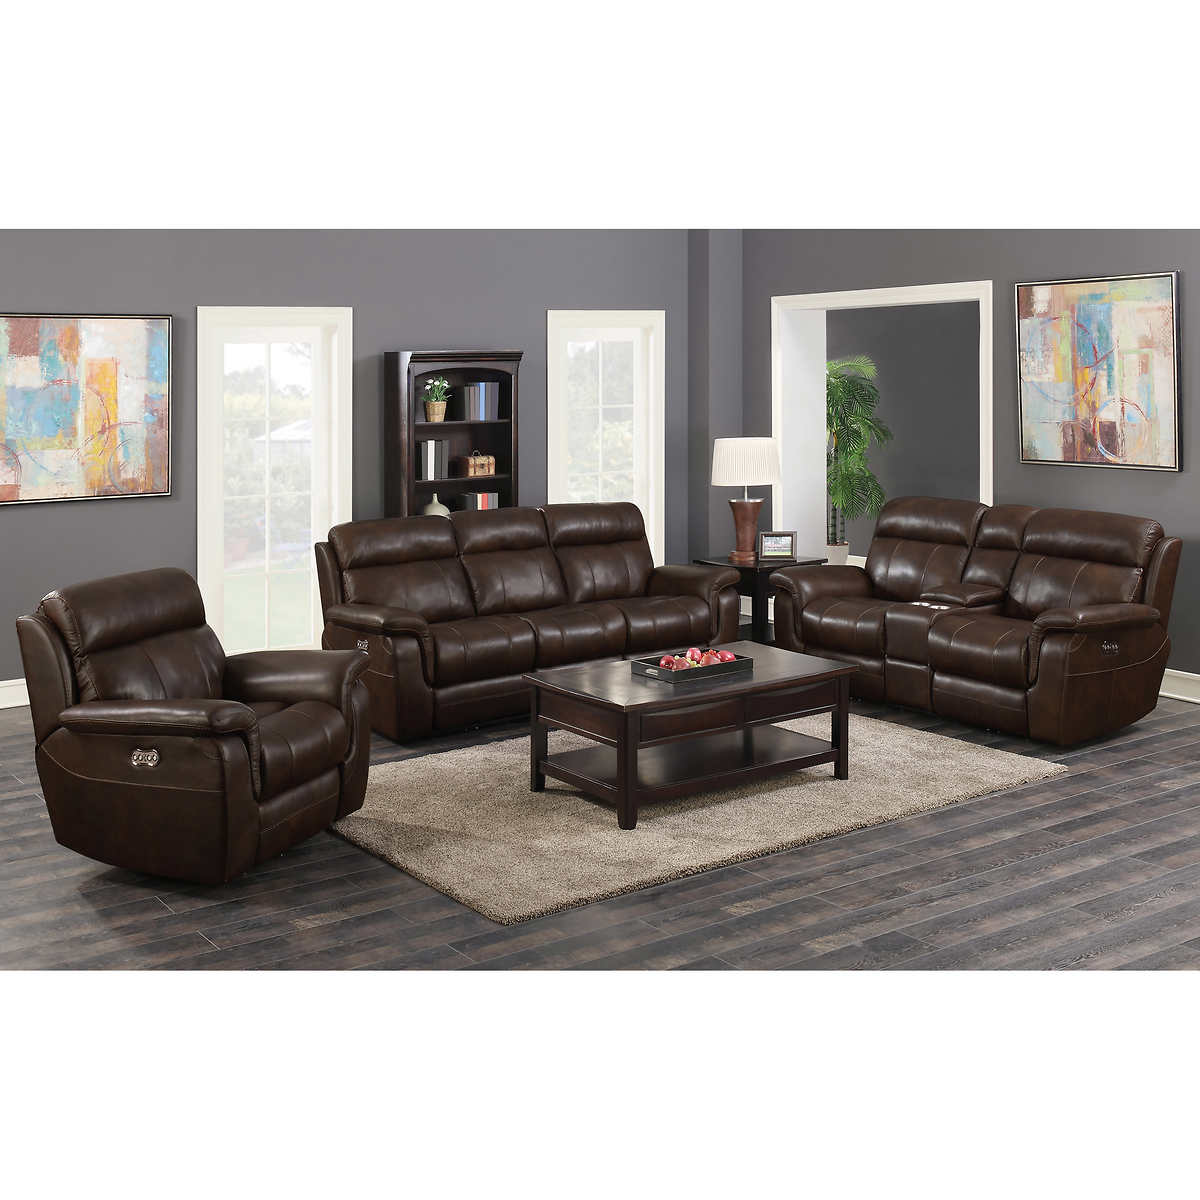 Top grain leather power reclining living room set 1 1